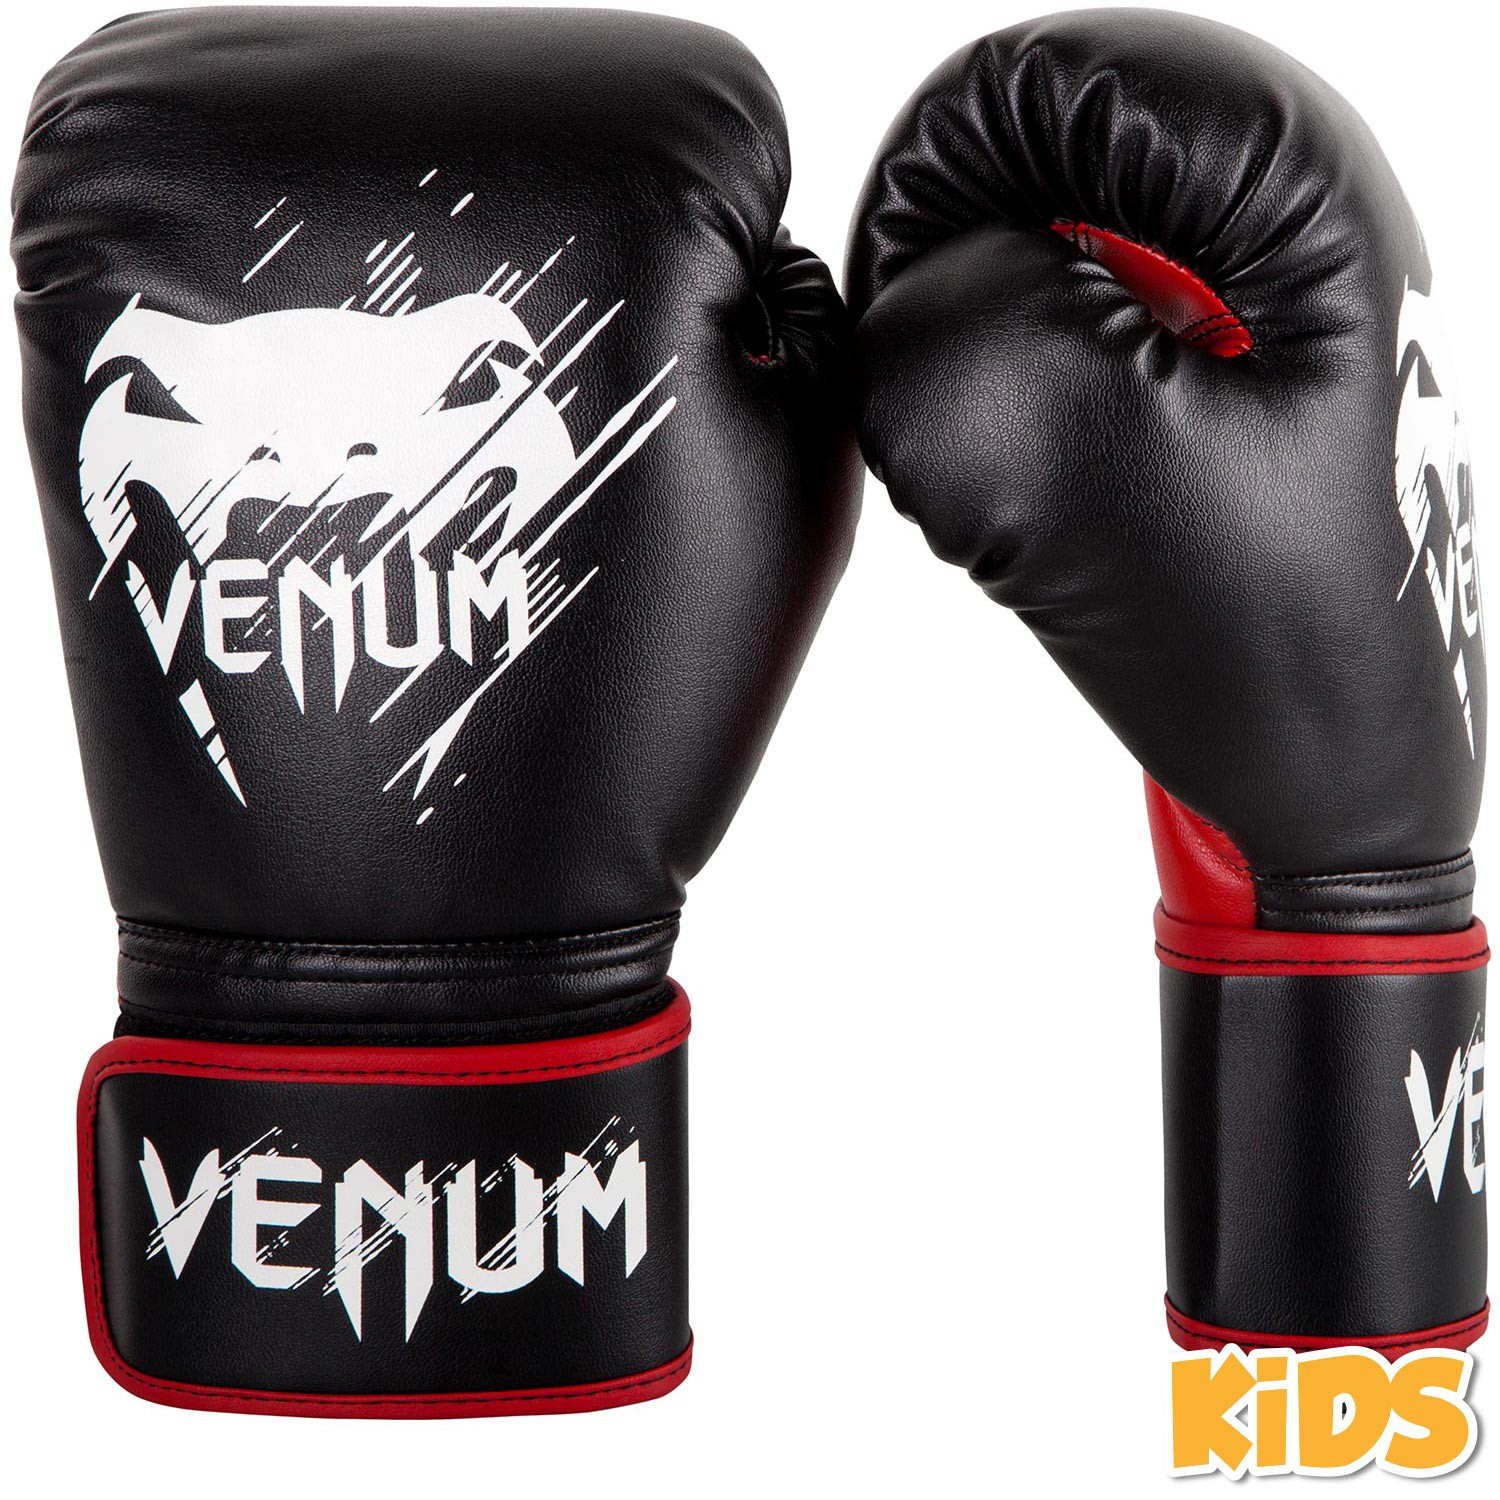 photo de gants de boxe nx82 montrealeast. Black Bedroom Furniture Sets. Home Design Ideas